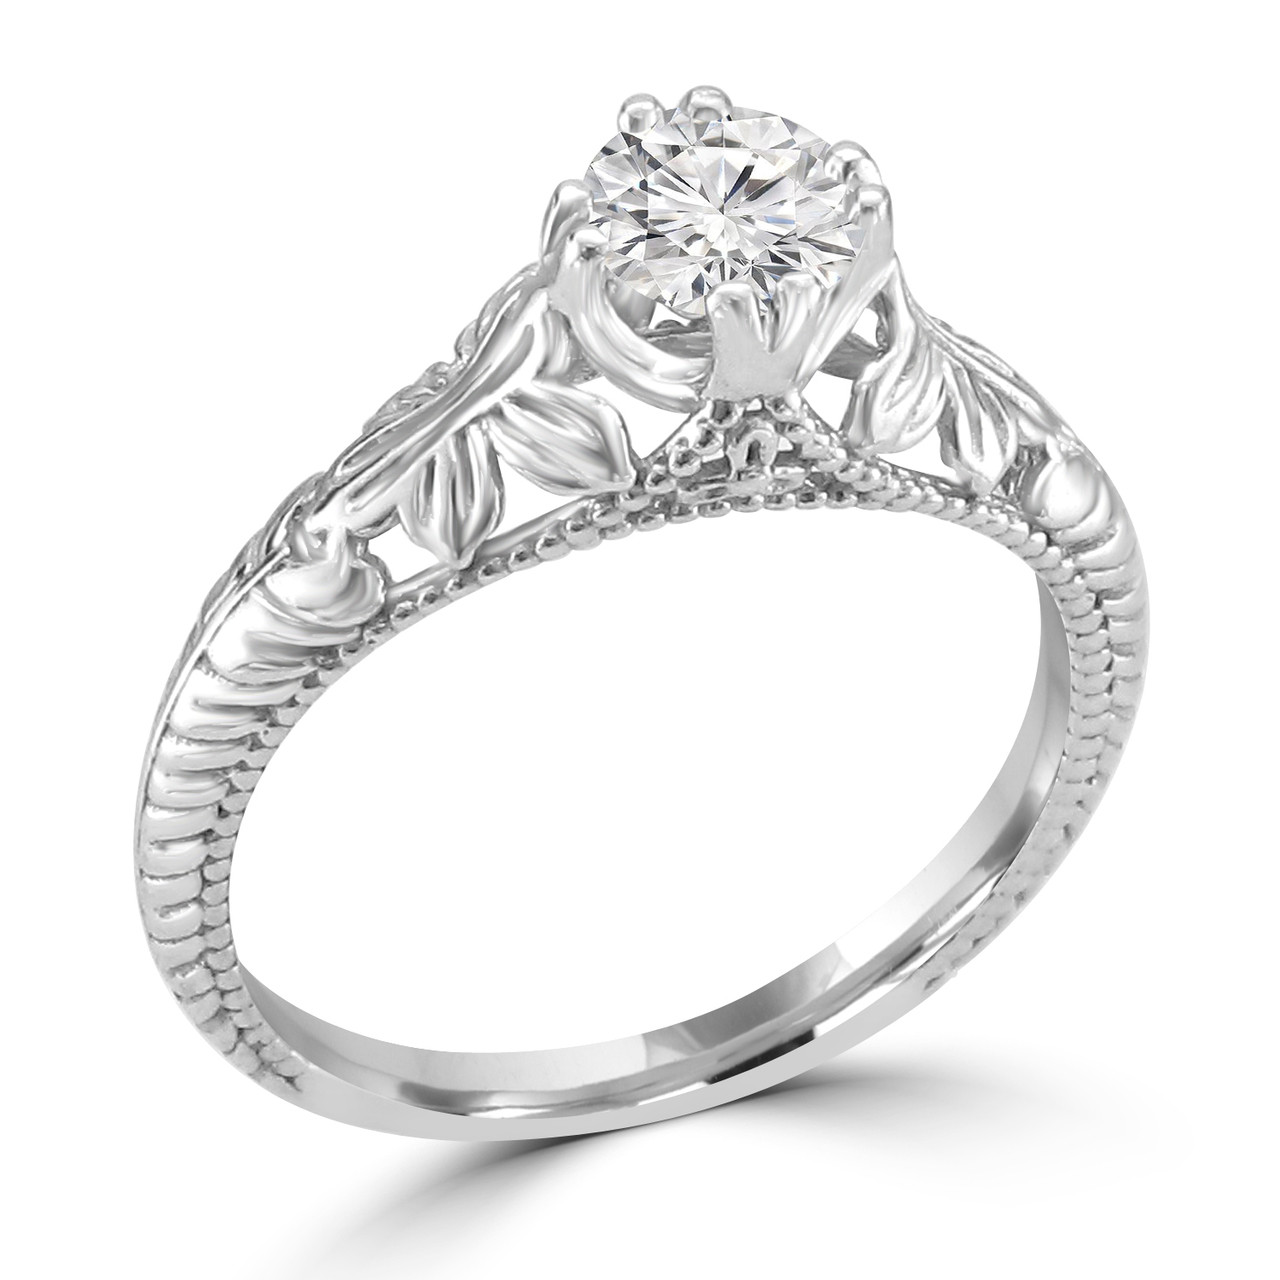 engagement rings for of engagment amp wedding her fresh new bands inspirations